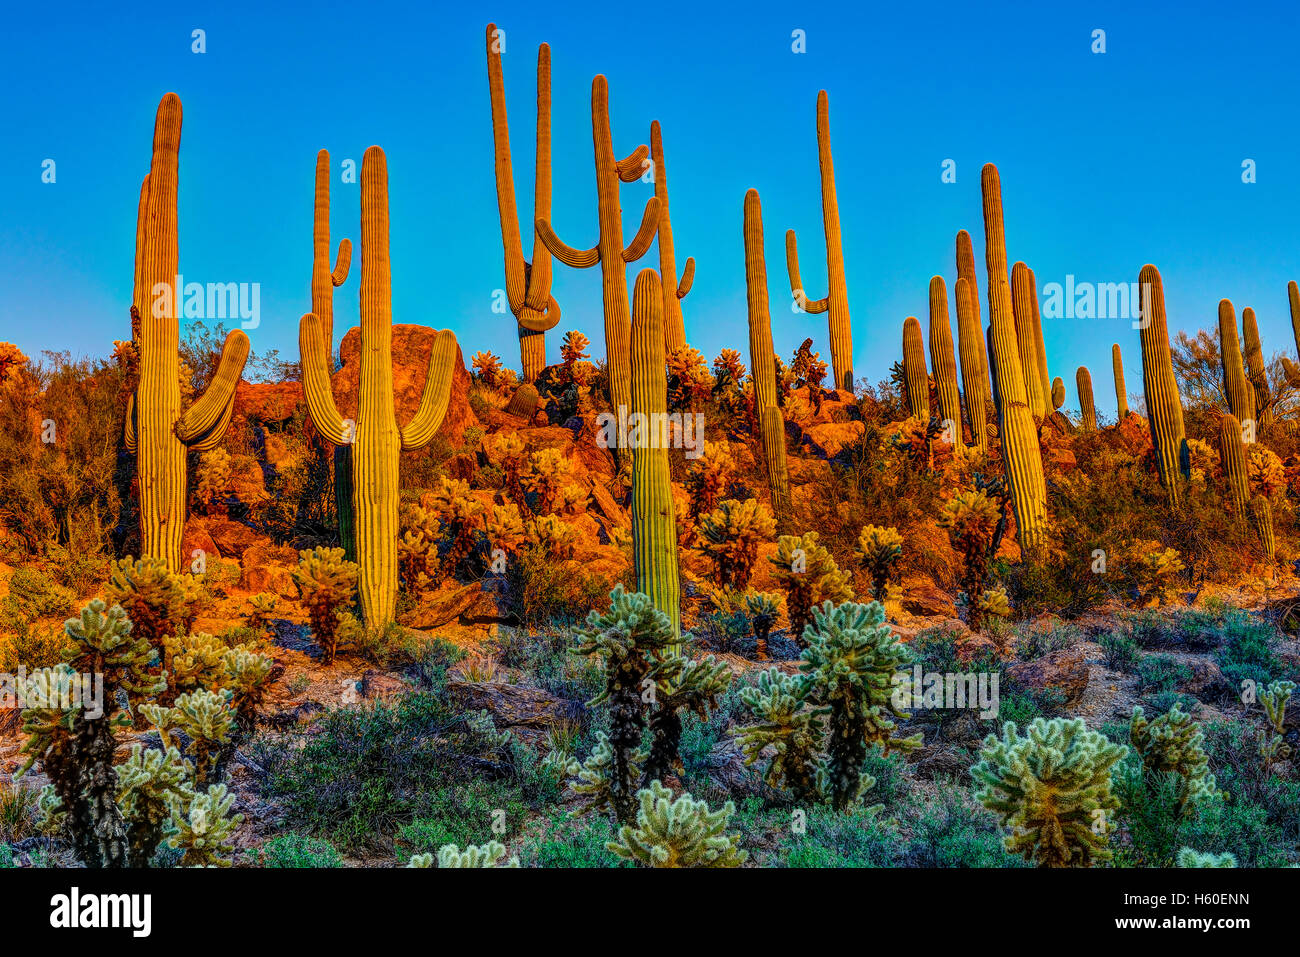 Saguaros at dusk - Stock Image